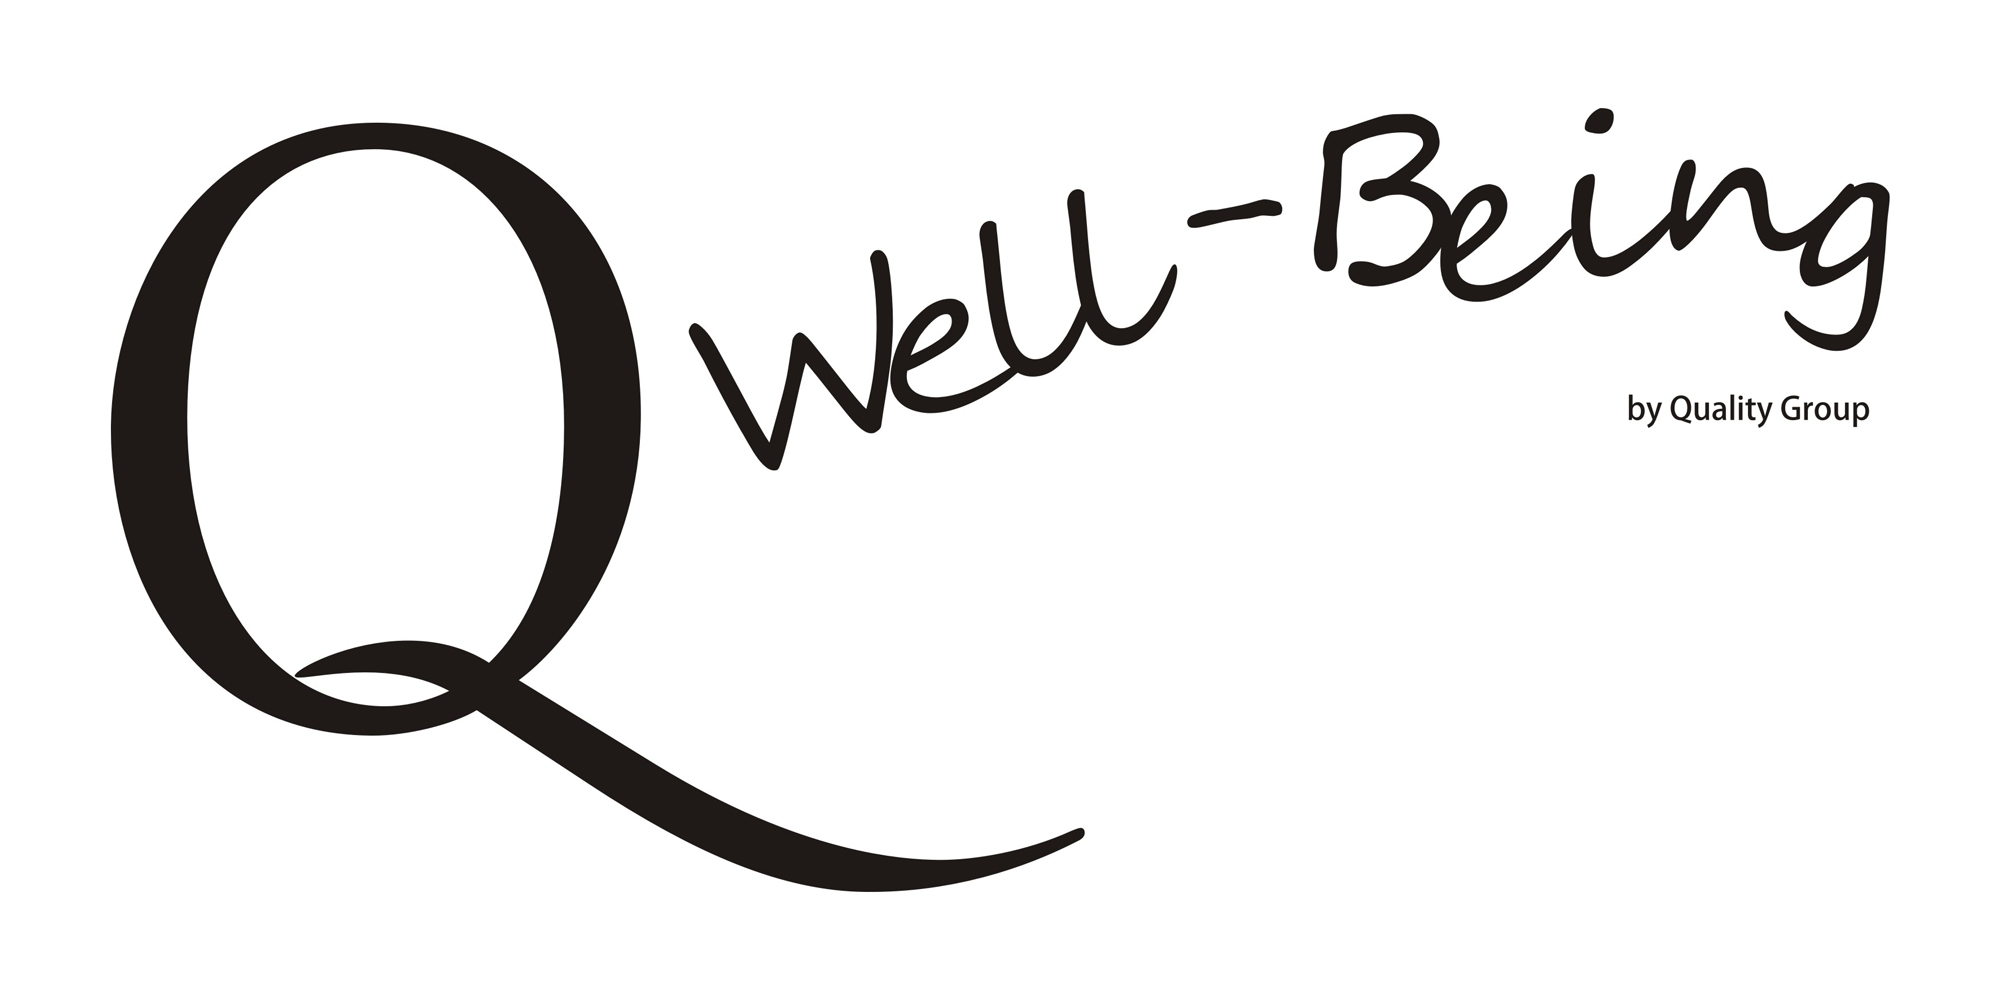 Q Well-Being by Quality Group